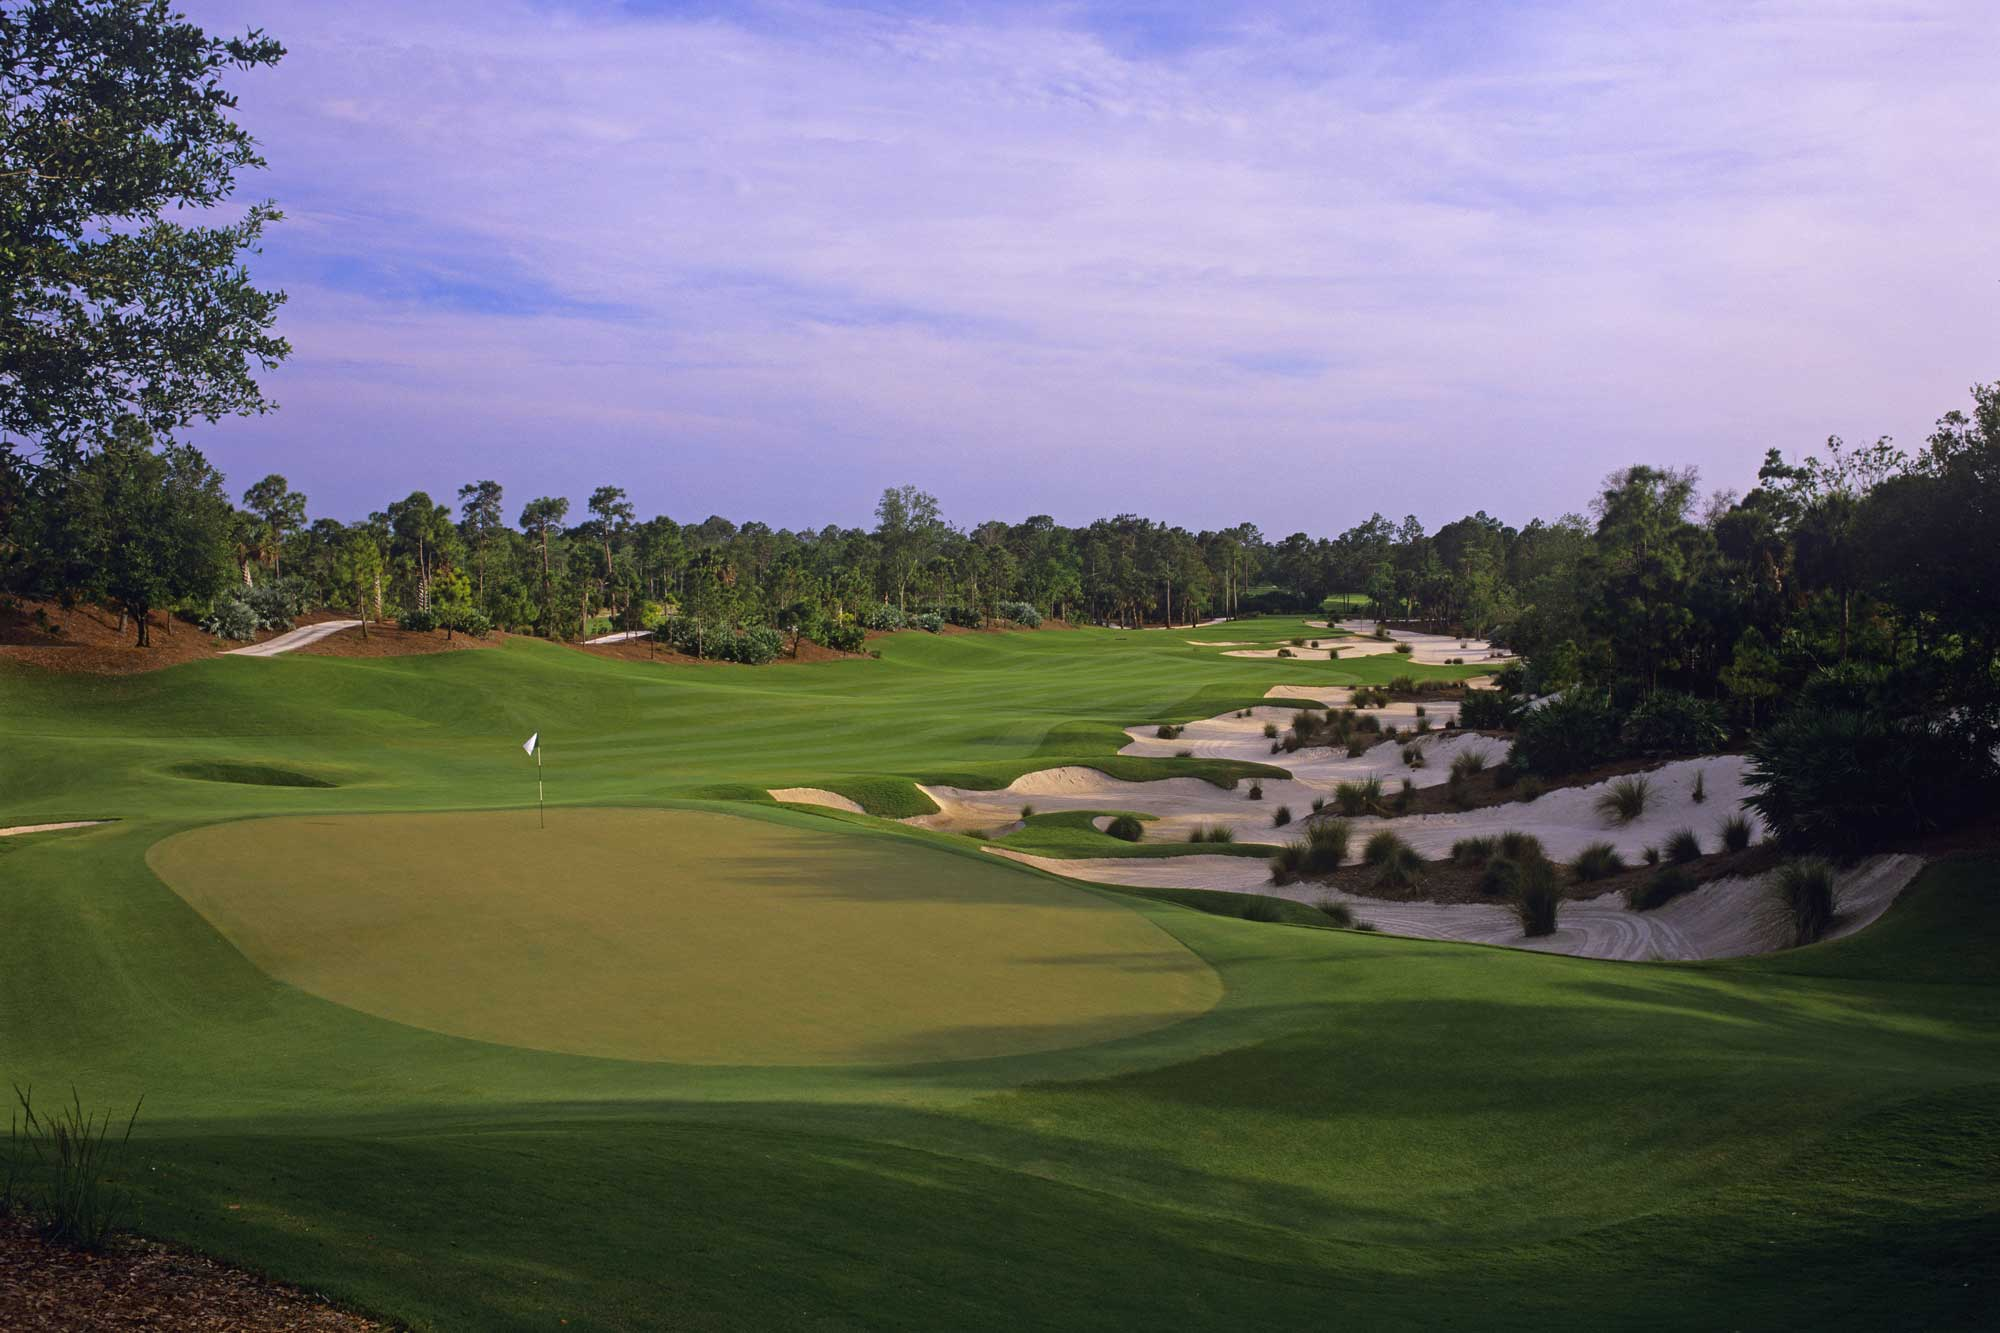 Overview of golf course named Calusa Pines Golf Club